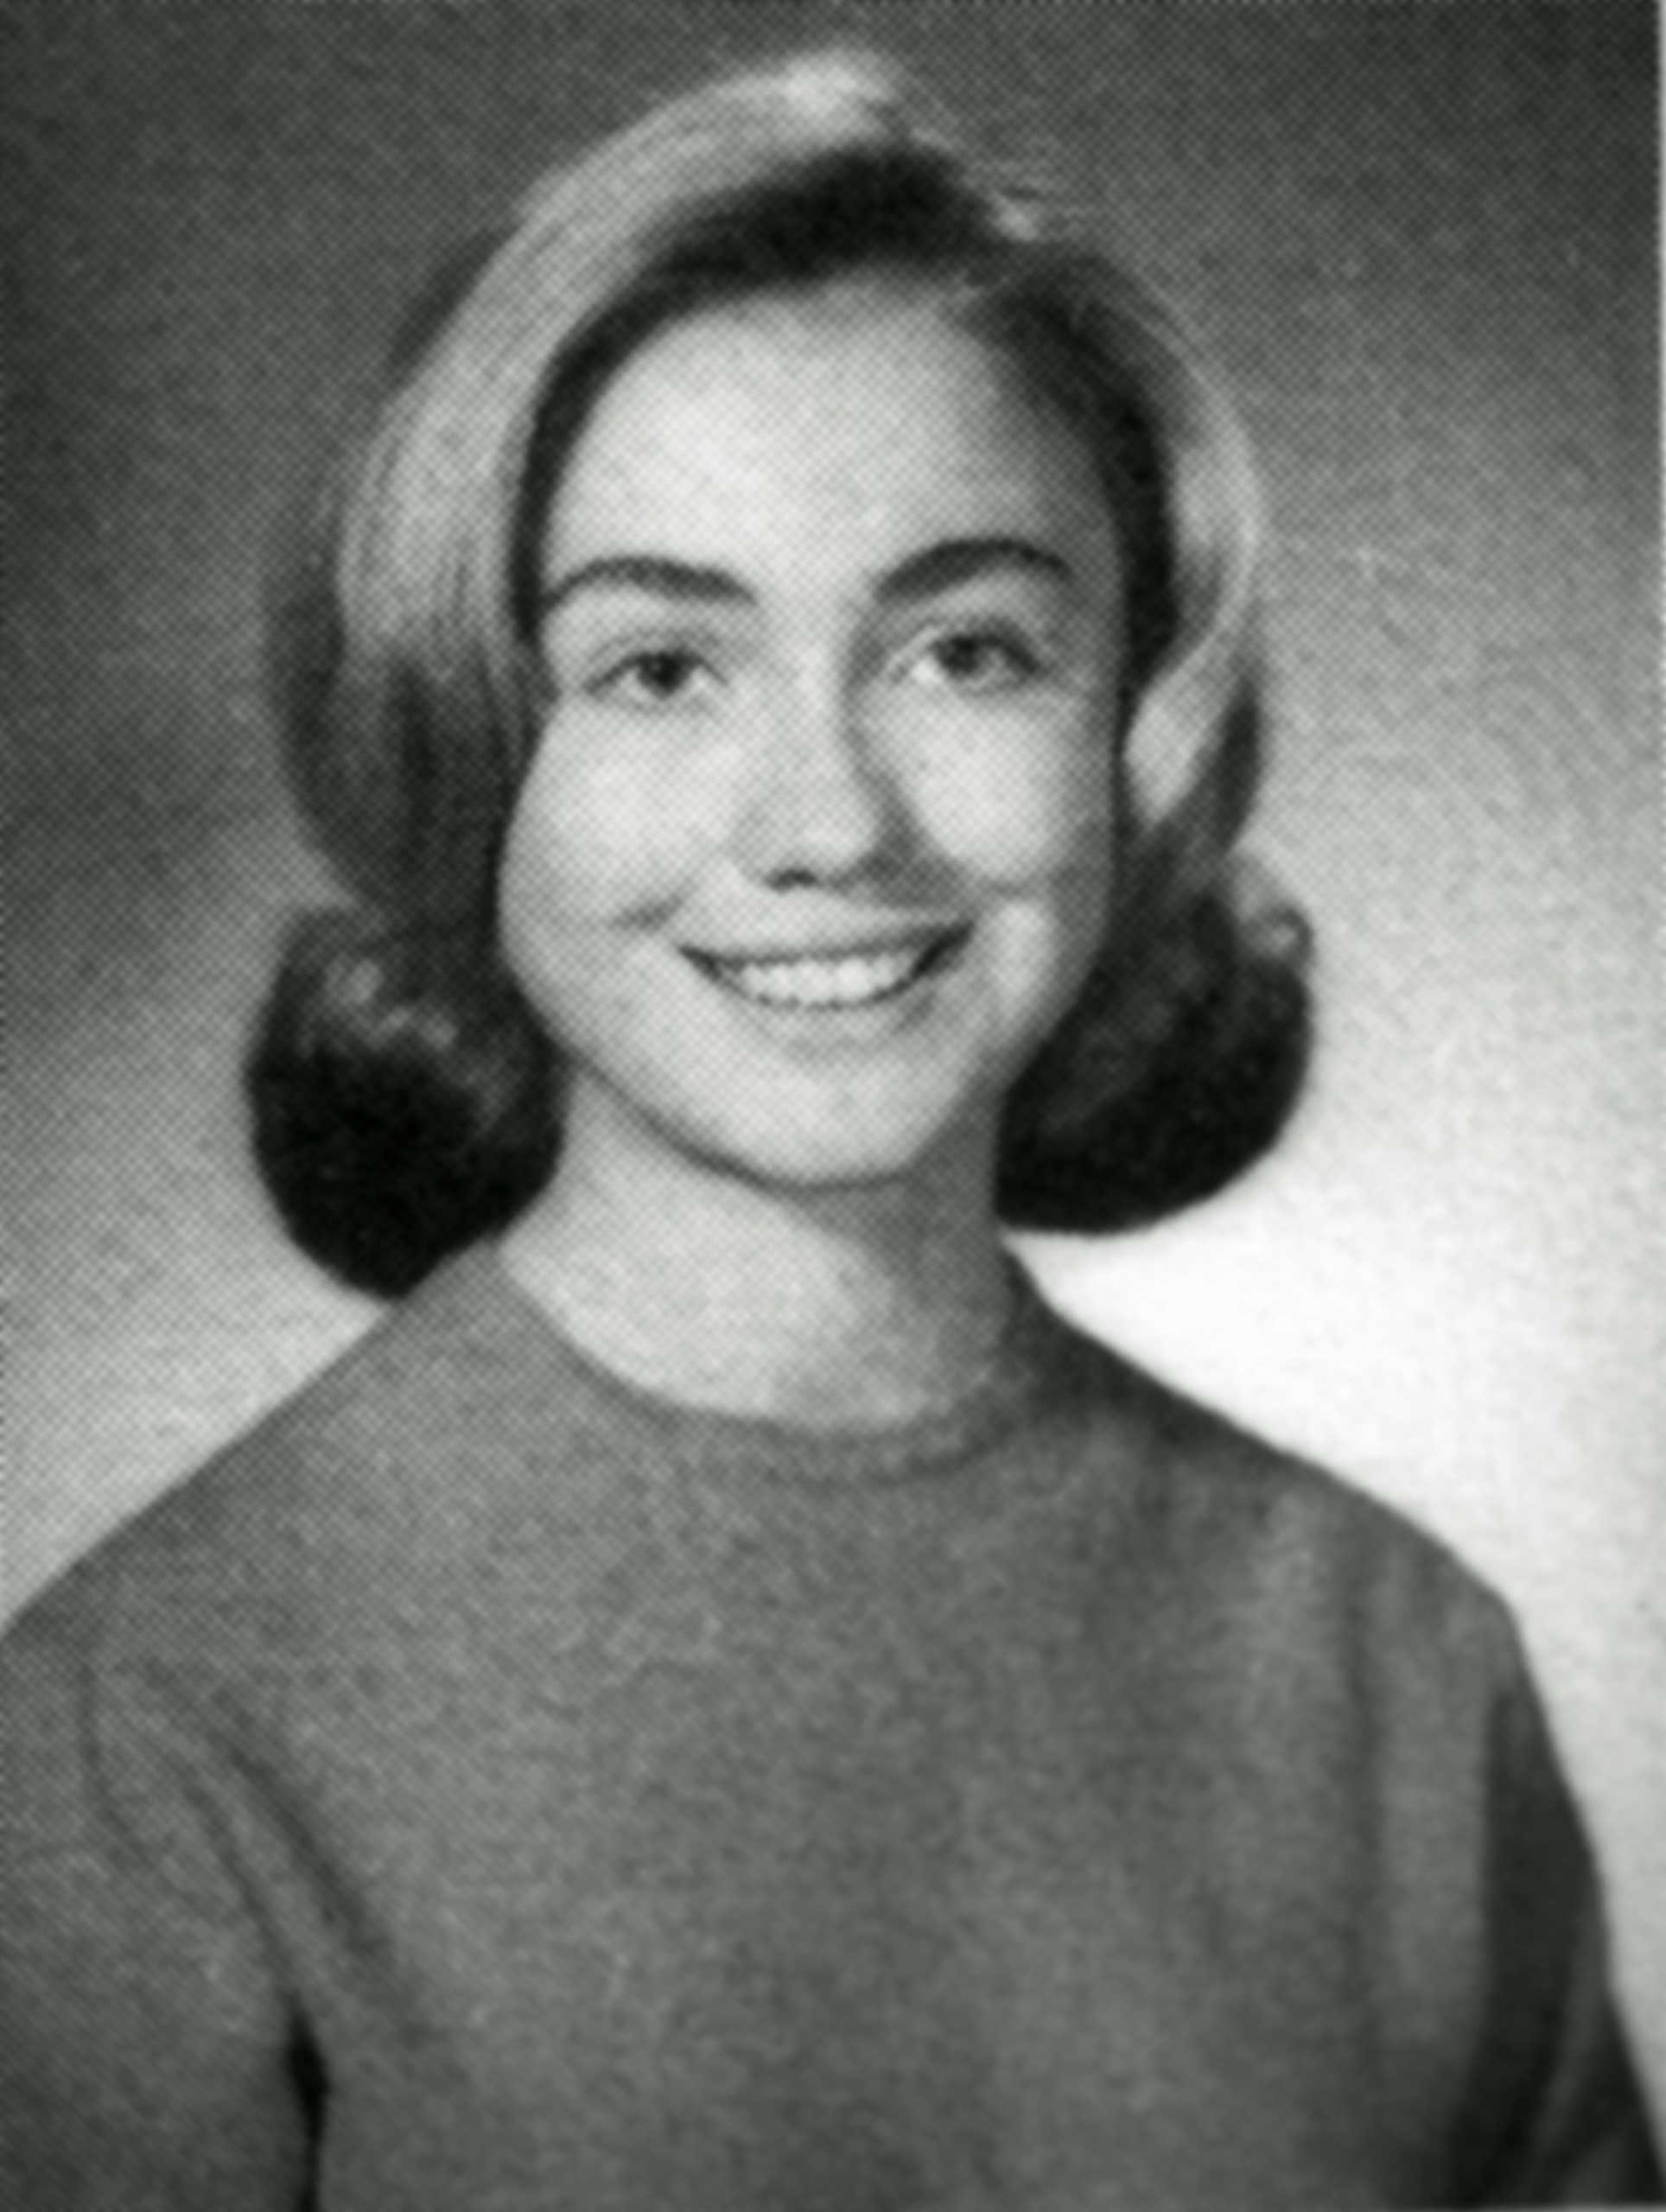 <b>Teenager:</b> Hillary Rodham poses in her 1965 senior class portrait from Park Ridge East High School in Illinois.